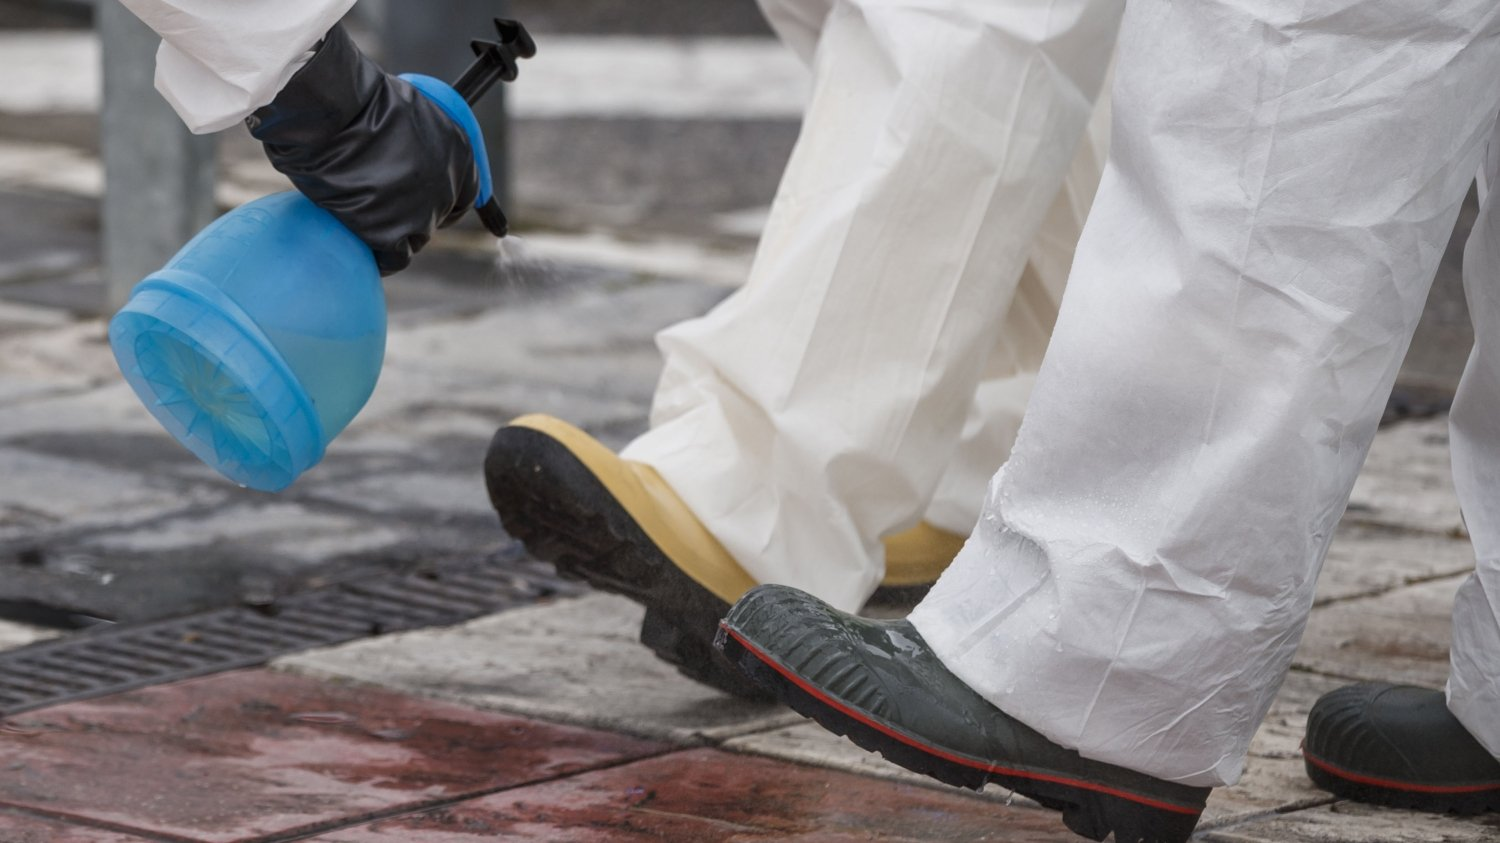 CDC: COVID-19 spreading on shoes, now spread up to 13 feet away